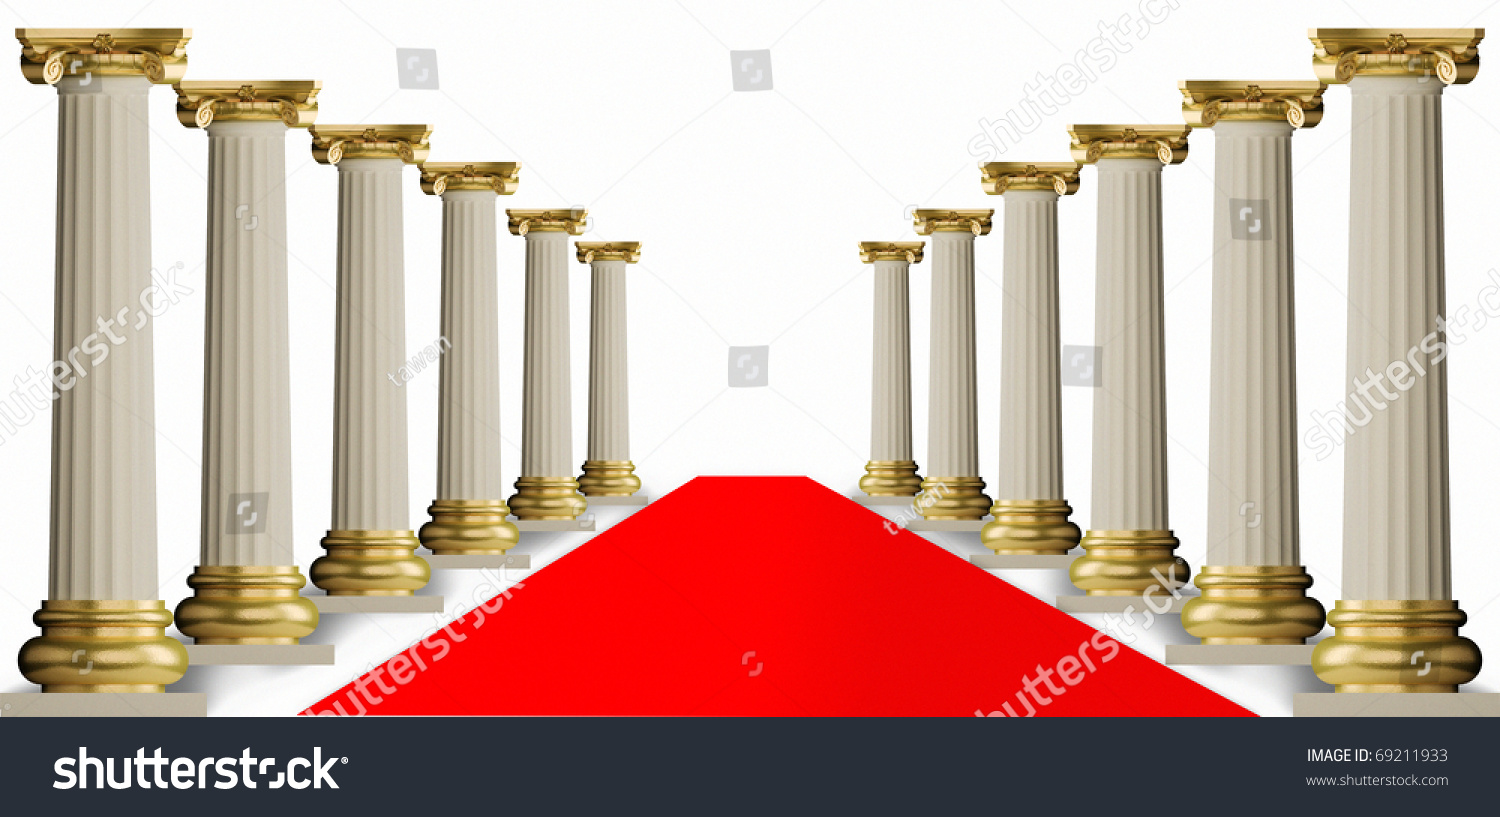 Red Carpet Andclassic Greek Column Stock Photo 69211933